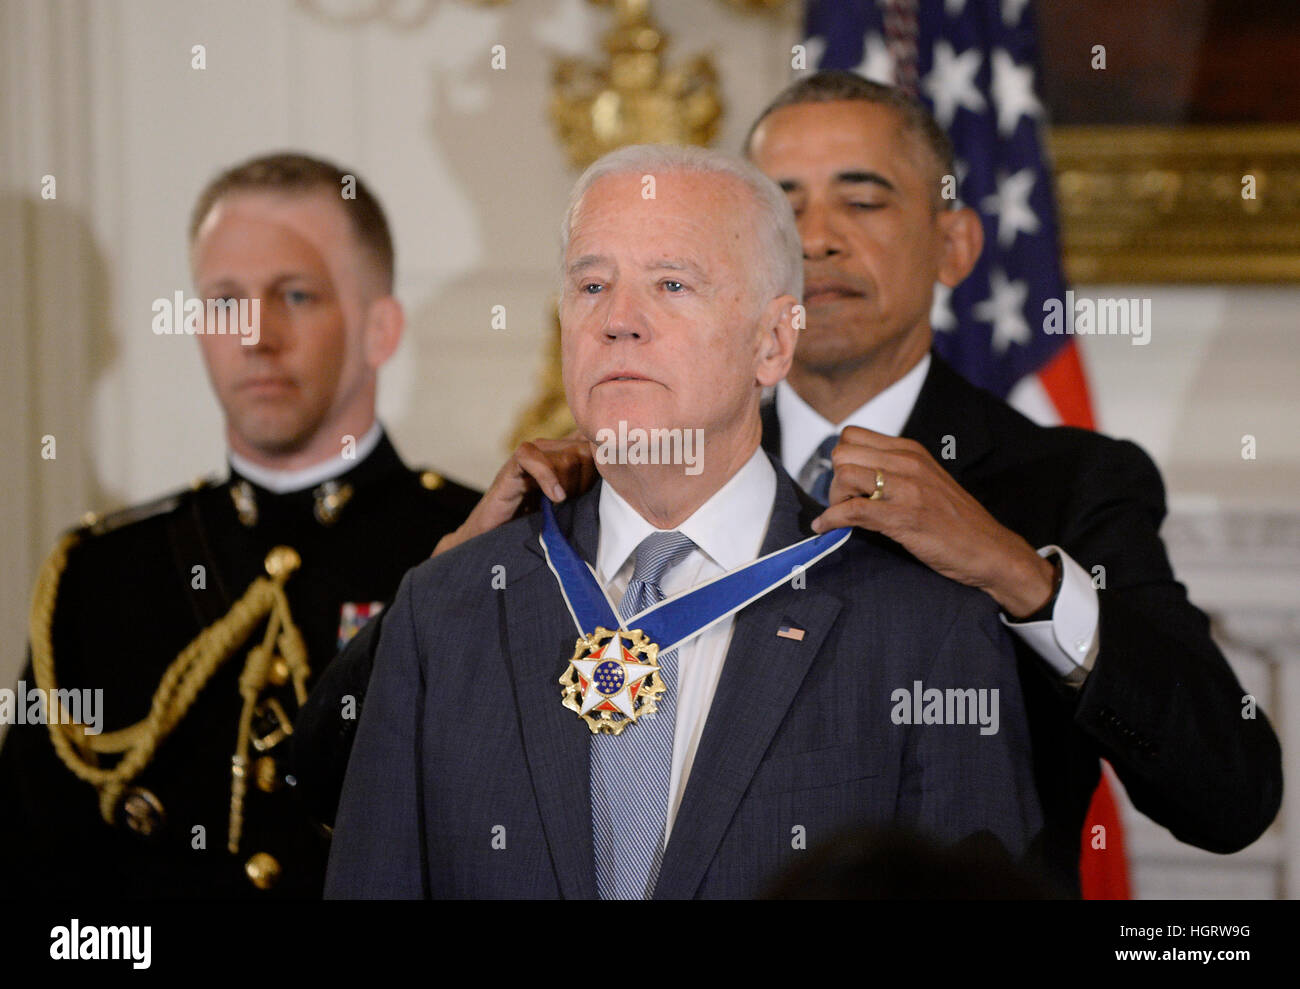 Washington DC, USA. 12. Januar 2017. US-Präsident Barack Obama stellt die Medal Of Freedom für uns Vice President Stockfoto